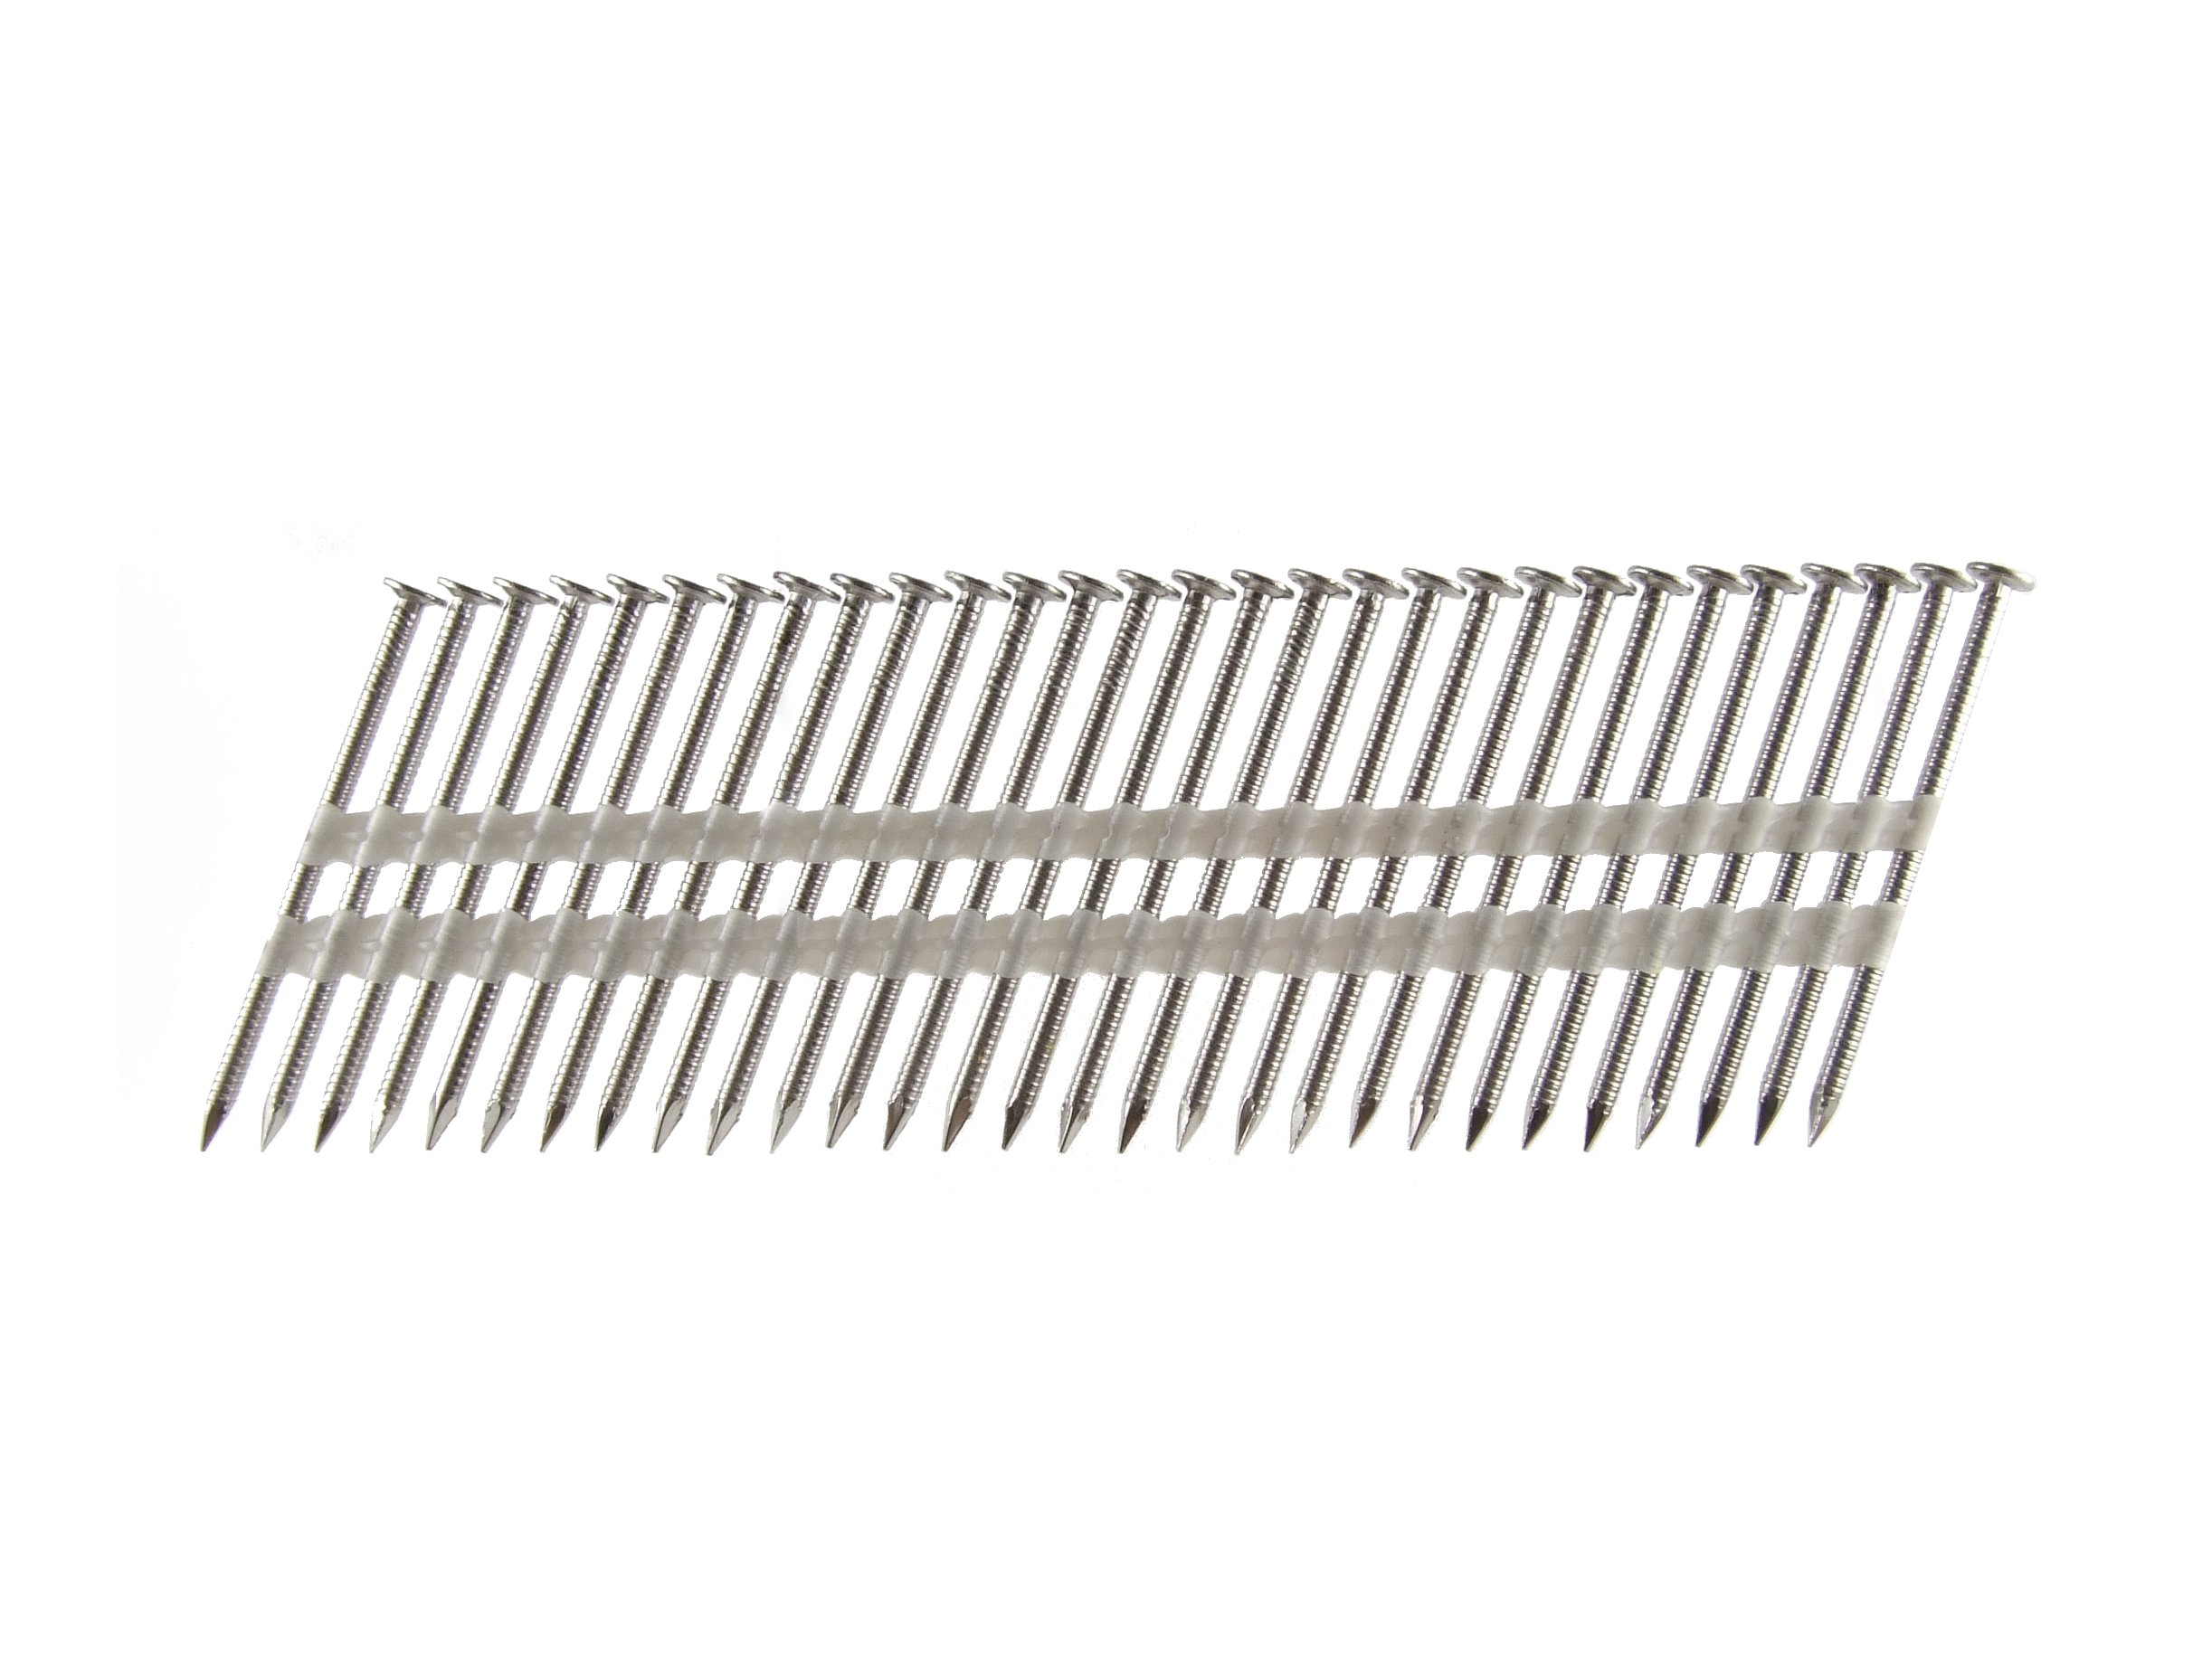 B&C Eagle A314X131RSS/22 Round Head 3-1/4-Inch x .131 x 22 Degree S304 Stainless Steel Ring Shank Plastic Collated Framing Nails (500 per box)